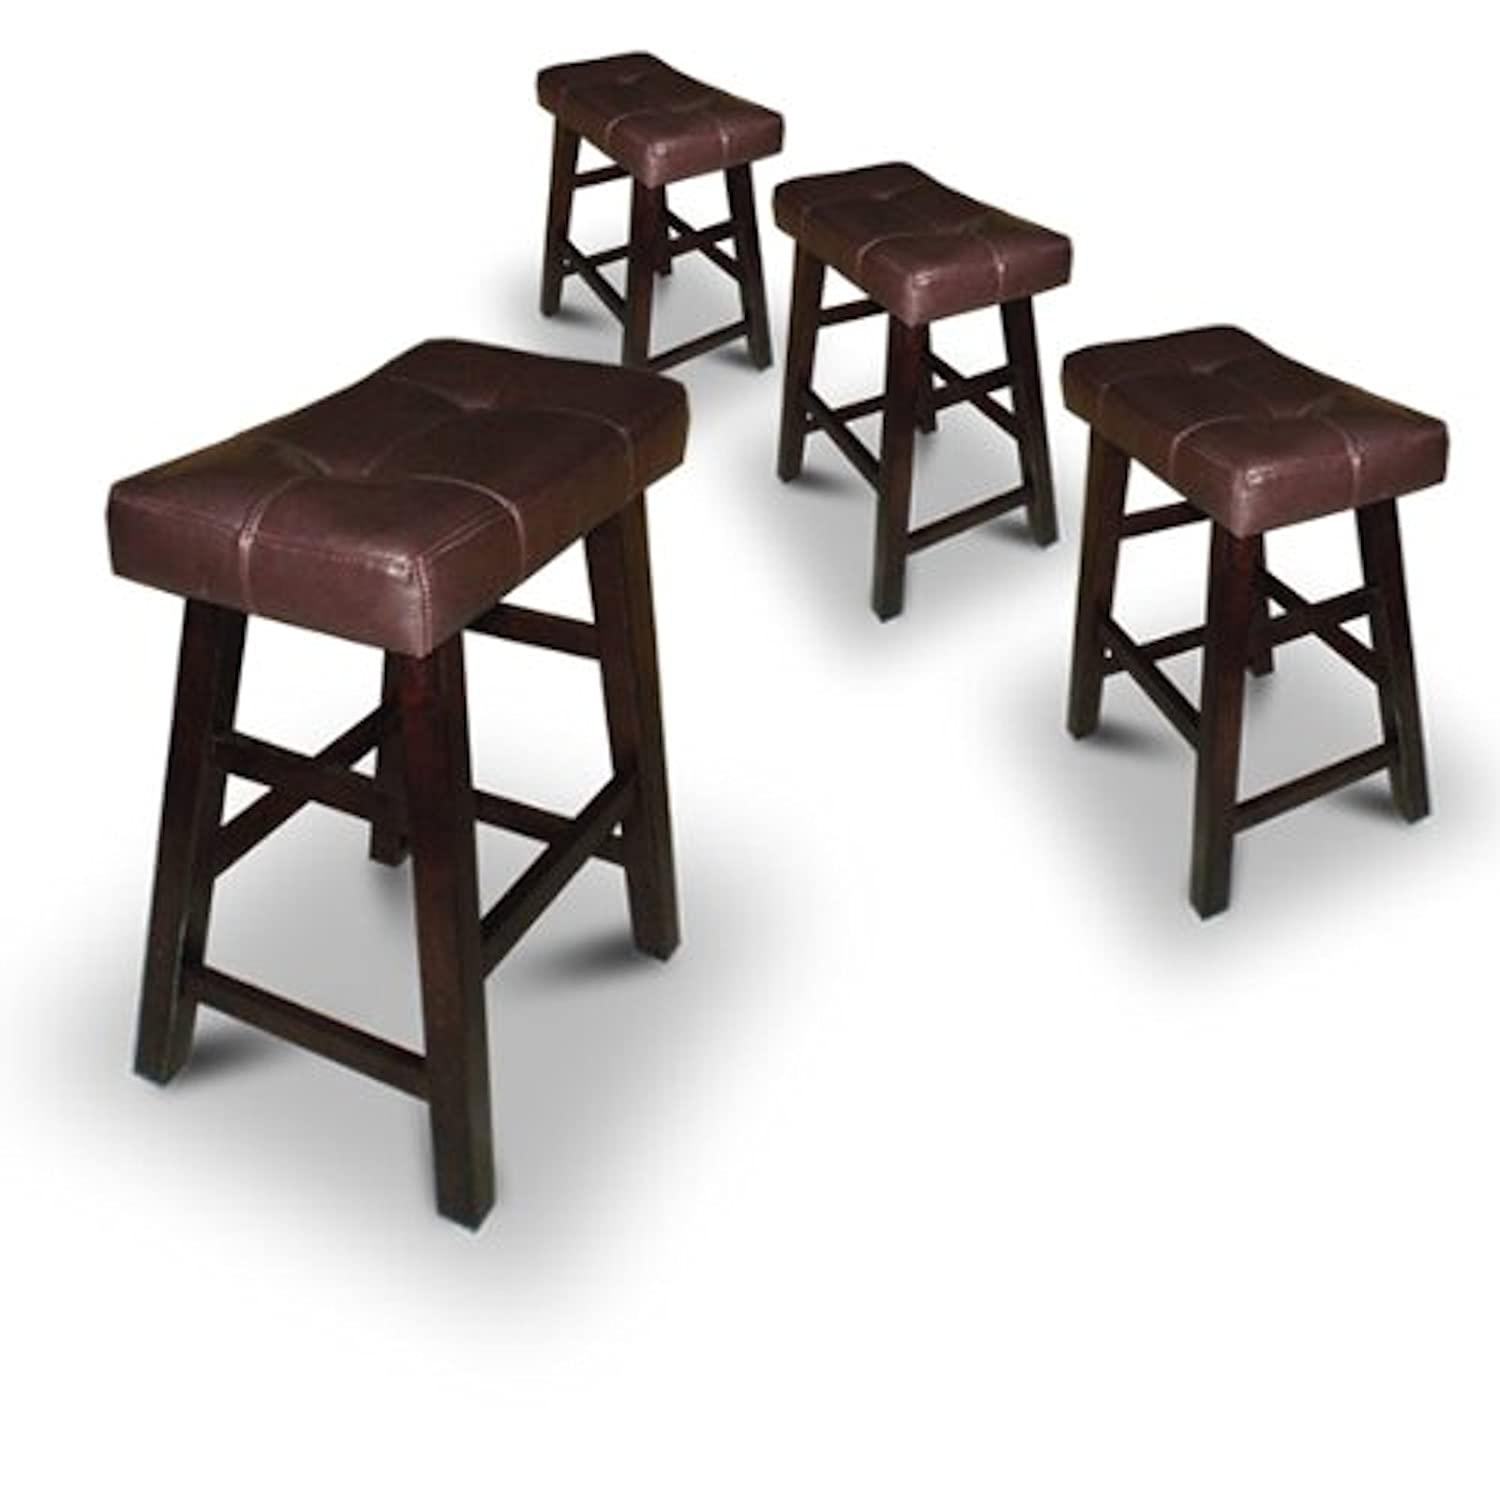 24 Wooden Bar Stools Amp Amazon Com 4 29 Dark Espresso Wood